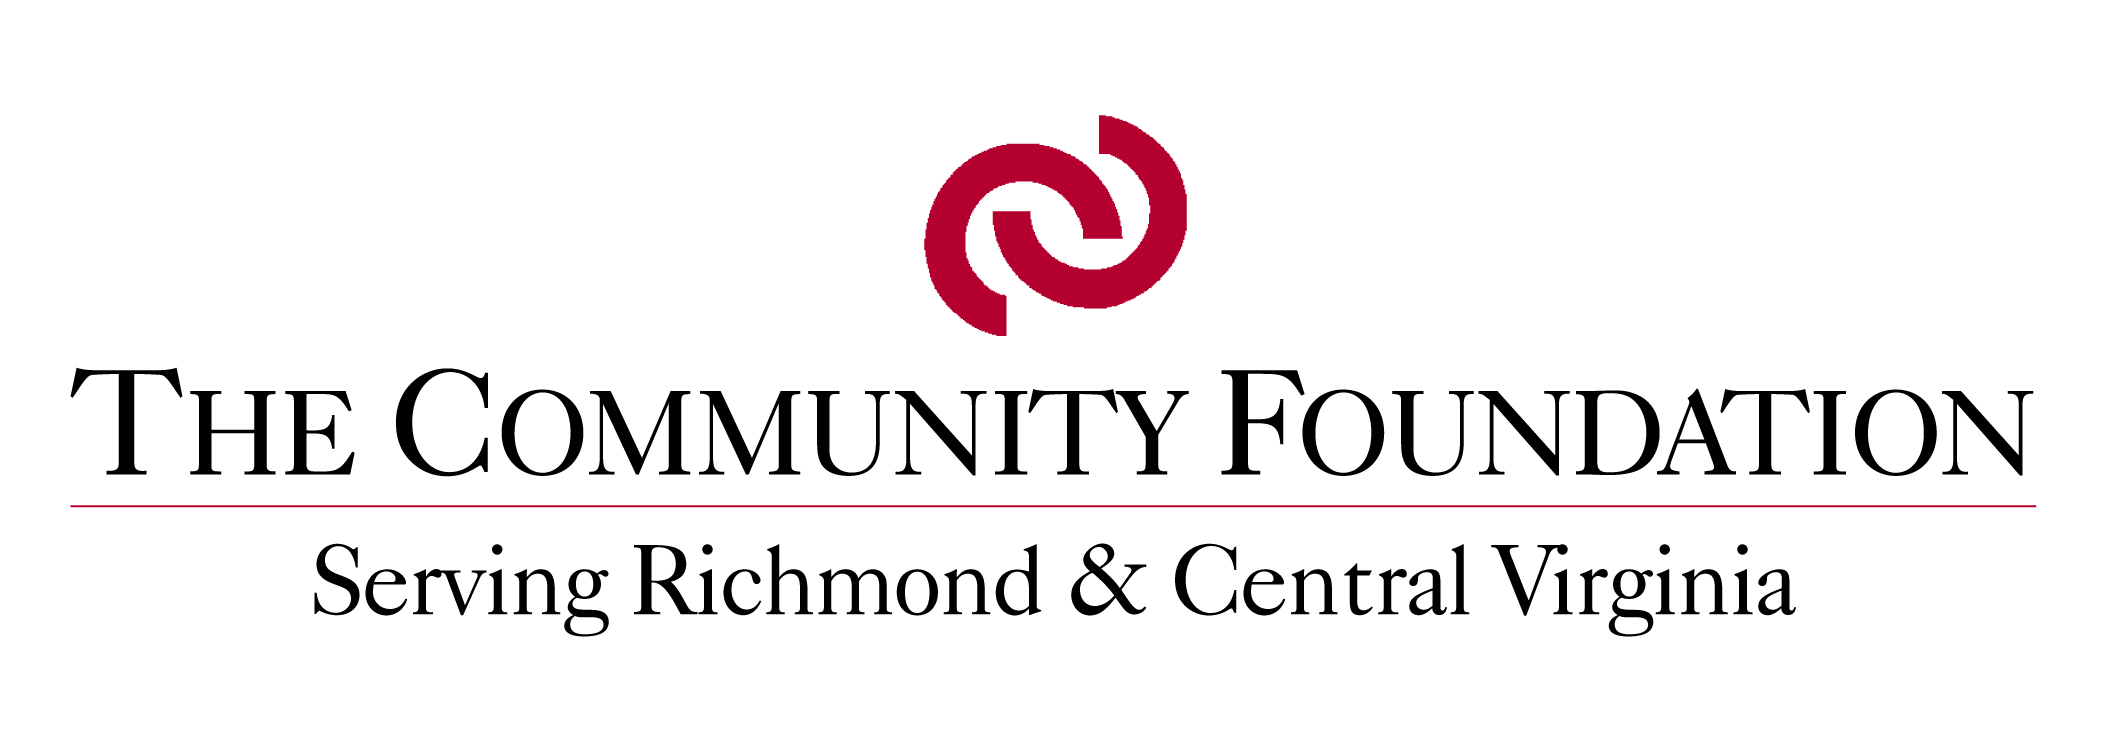 Community foundation.jpg